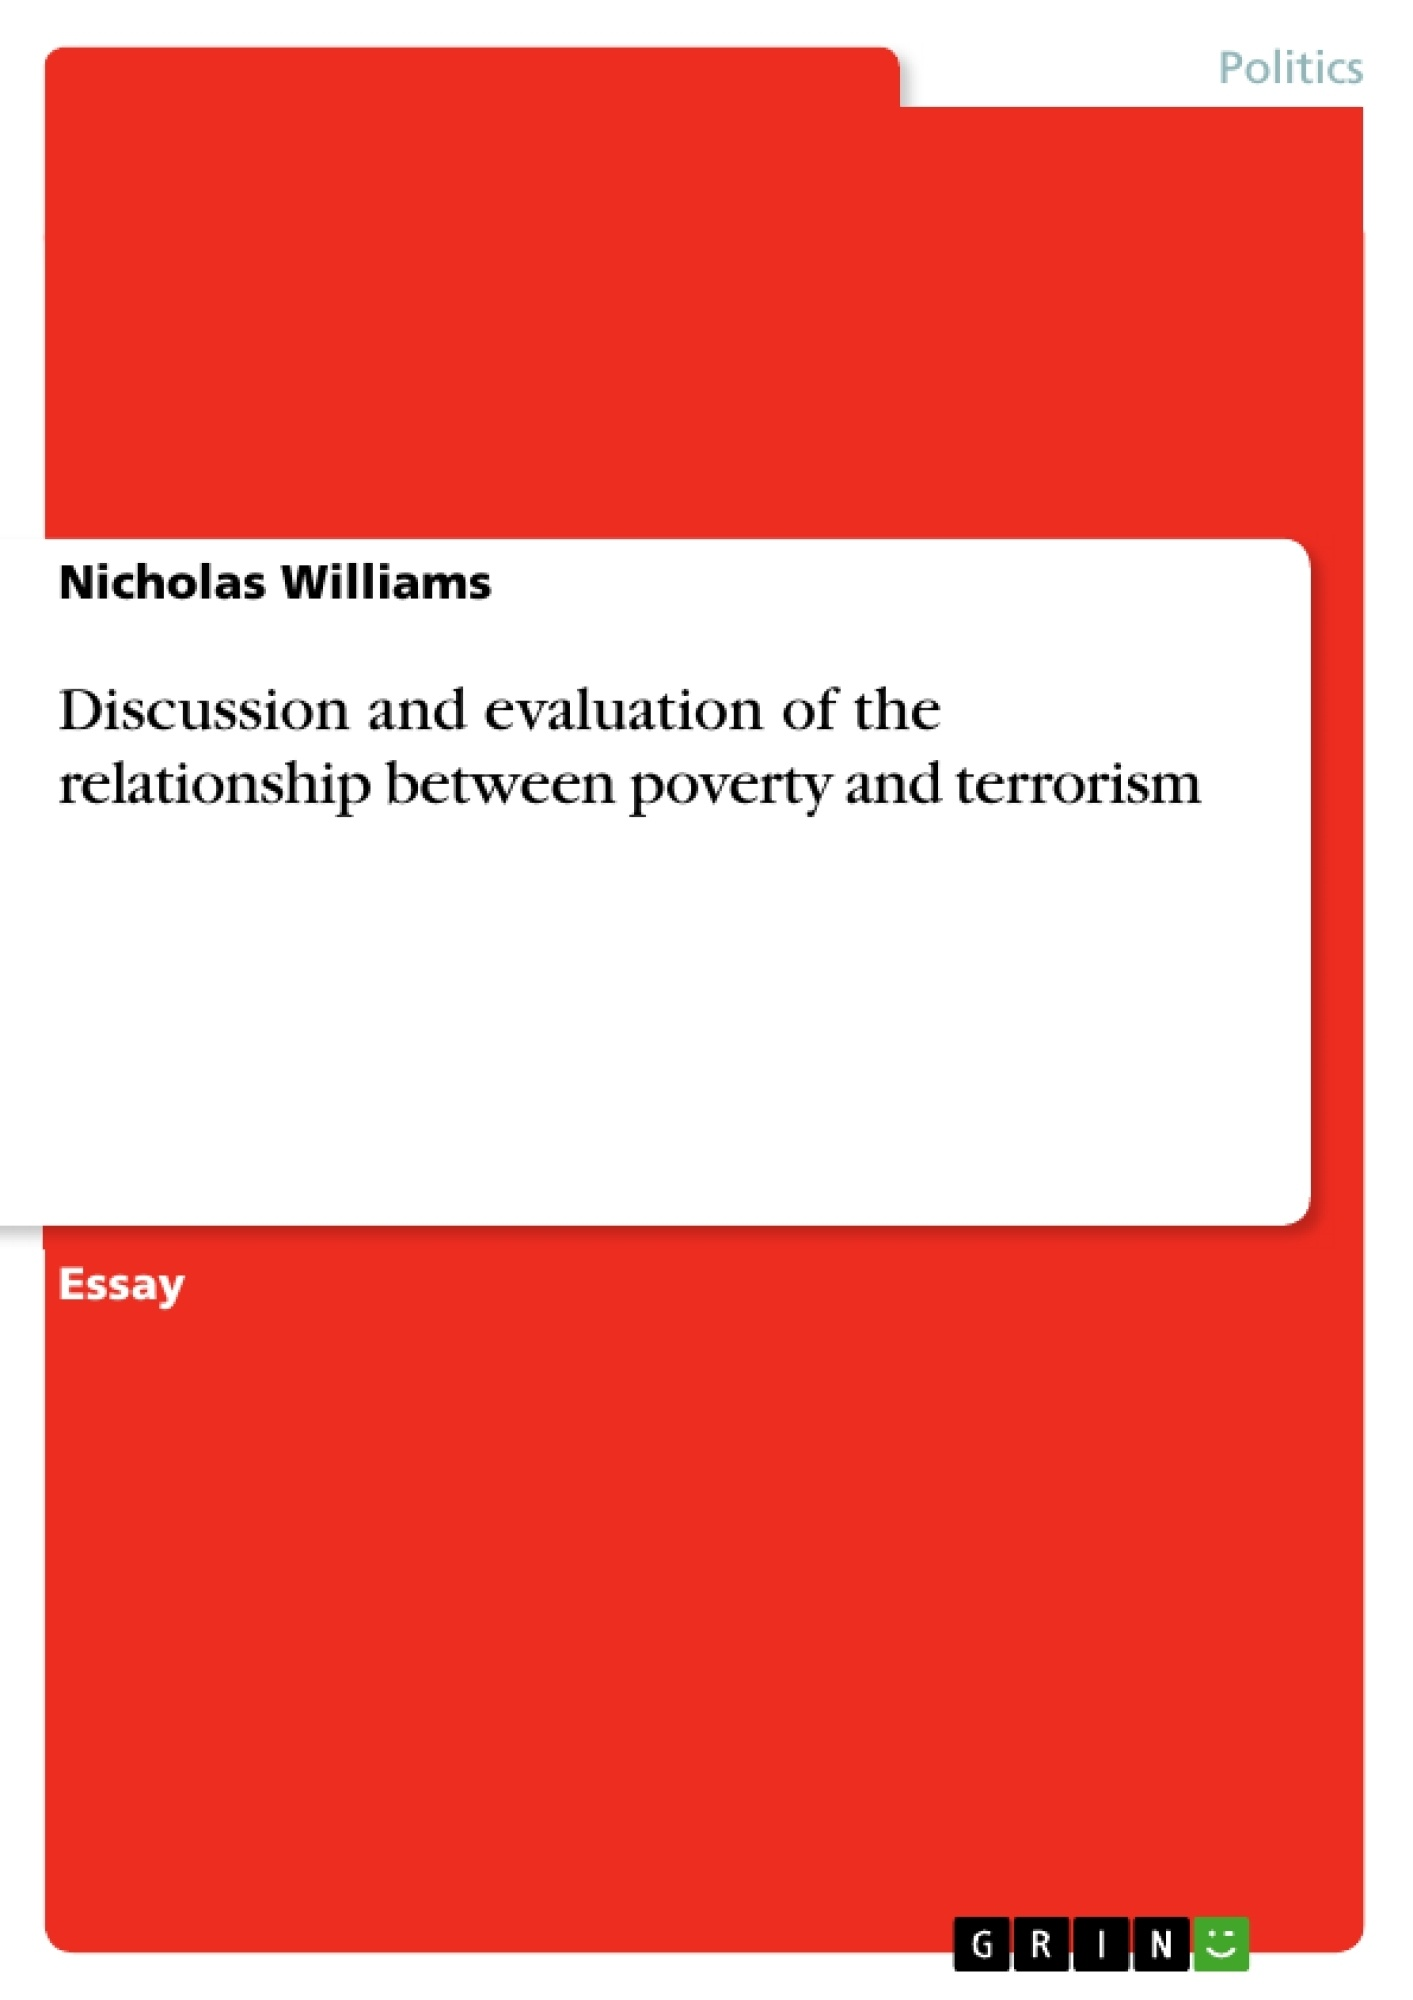 Title: Discussion and evaluation of the relationship between poverty and terrorism